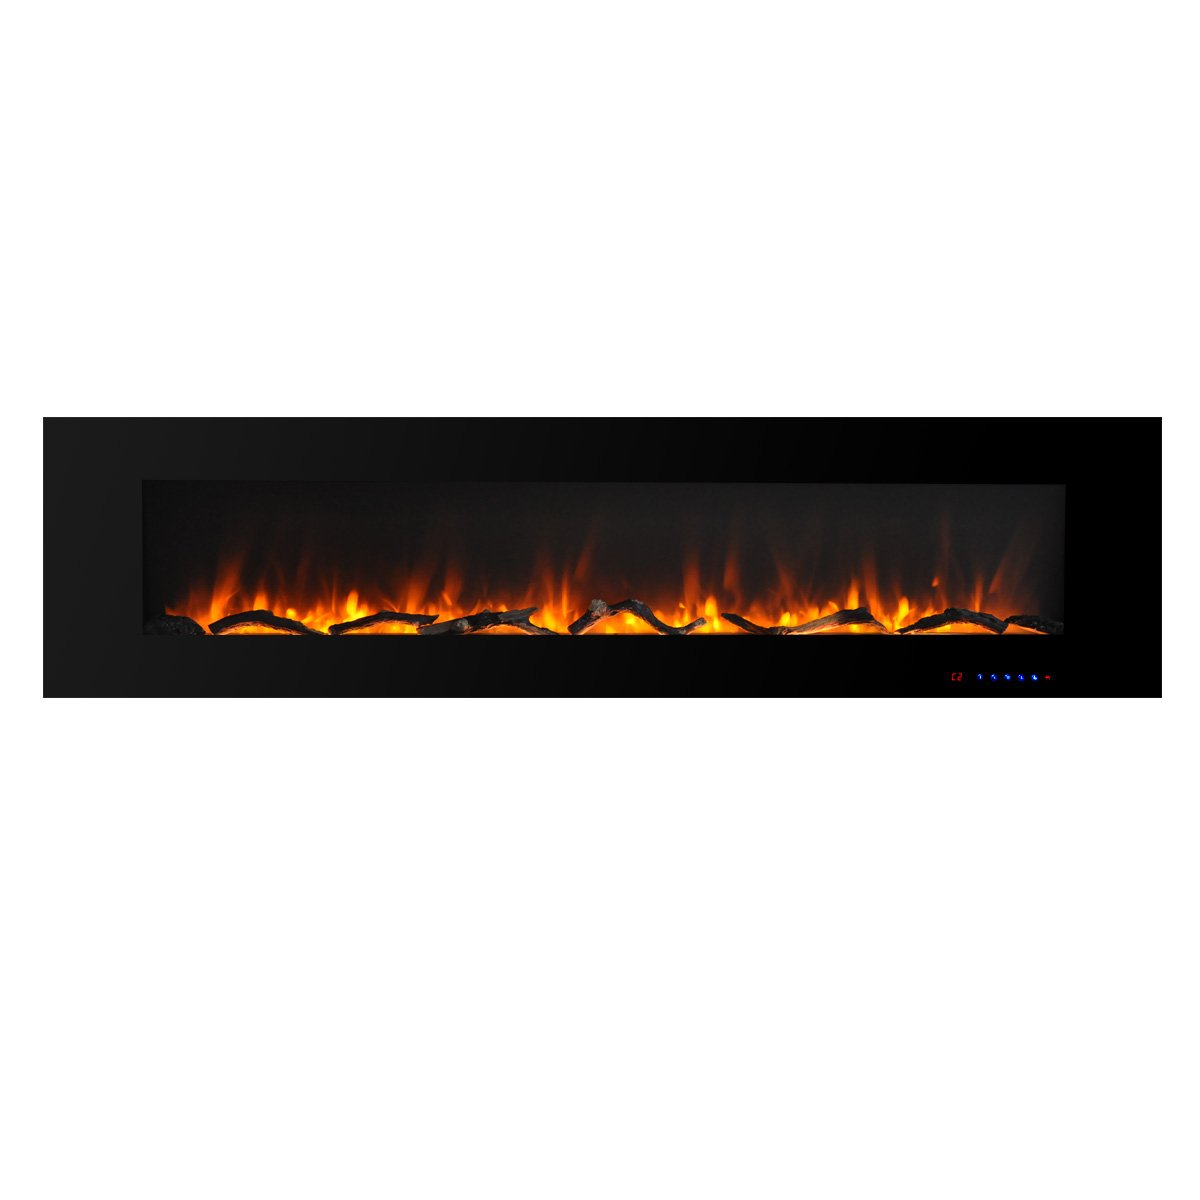 Valuxhome Luxey 72'' 750W/1500W, Wall Mounted Smokeless Electric Fireplace Heater with Remote, Black